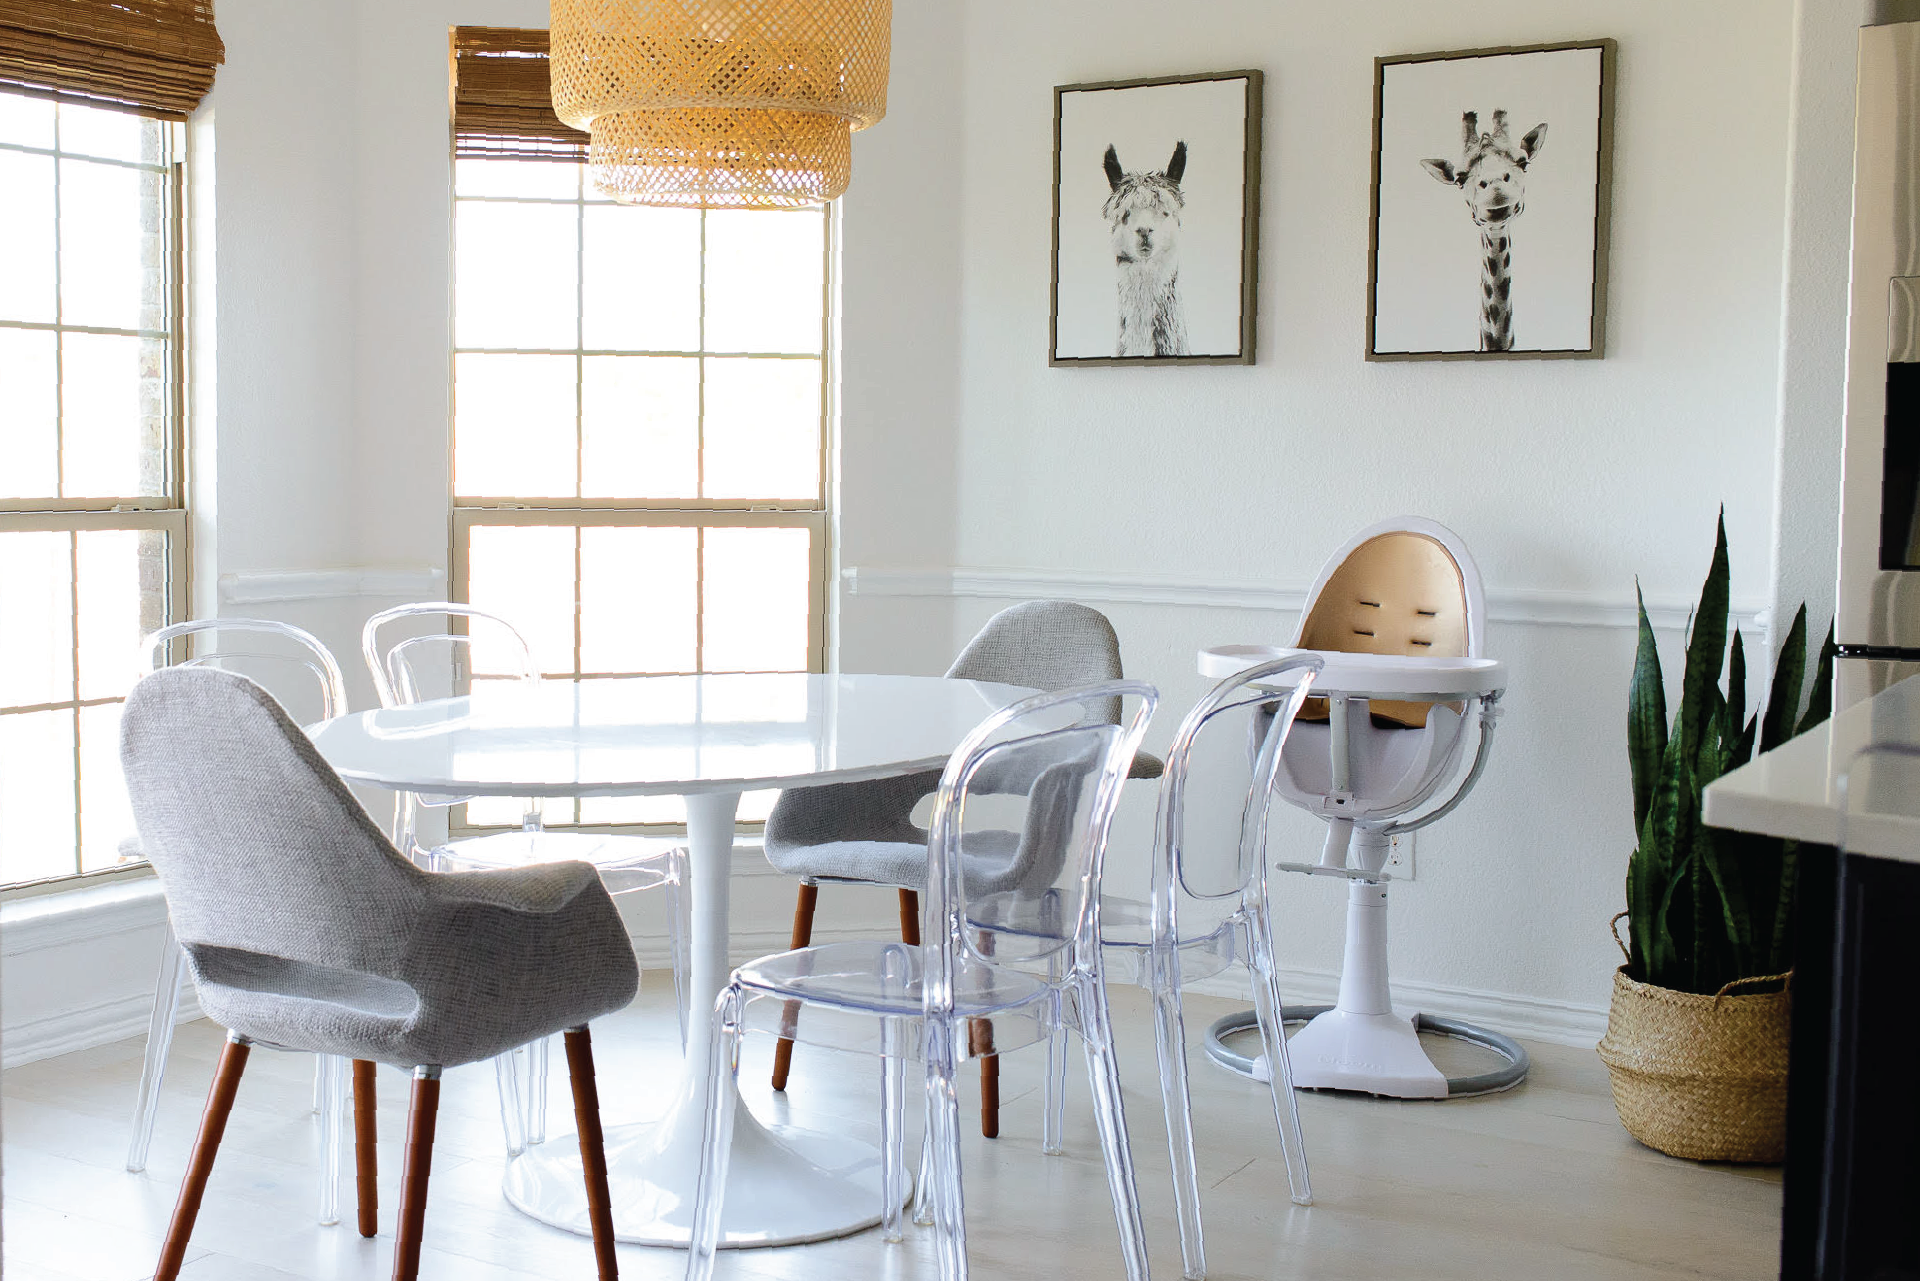 How To Choose: A Dining Chair For Family Dinners